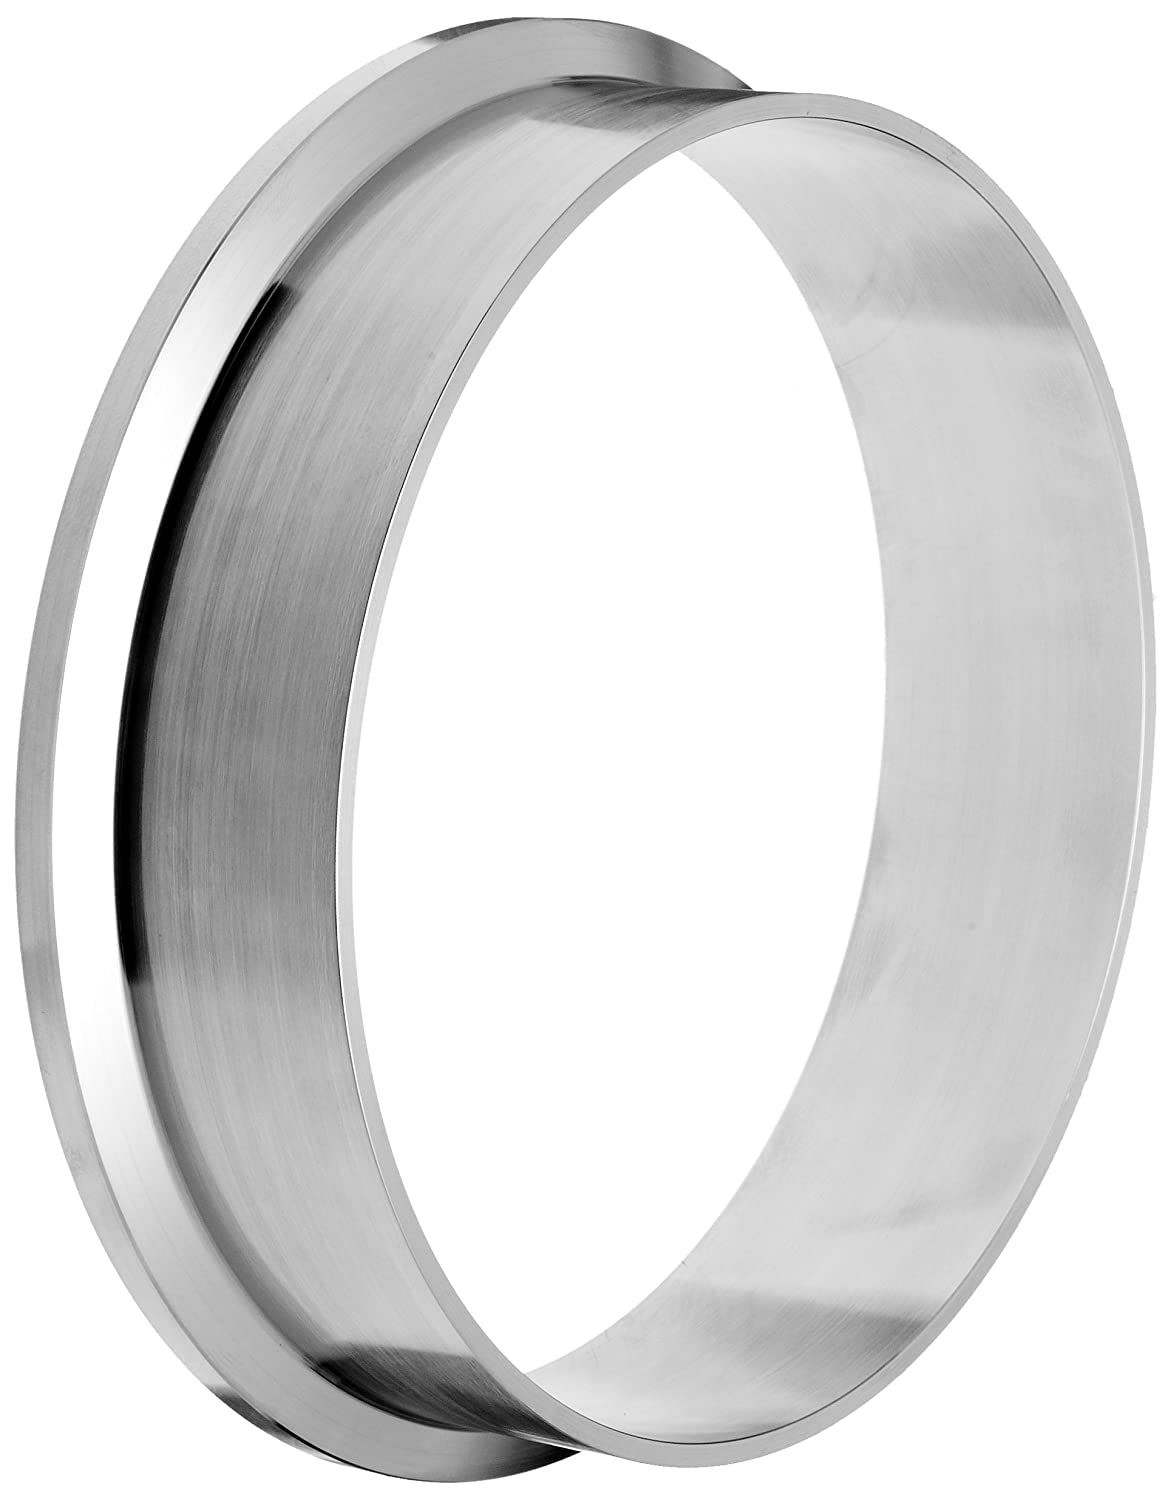 Dixon L14AM7-G600 Stainless Steel 304 Sanitary Fitting 6 Tube OD Long Weld Clamp Ferrule